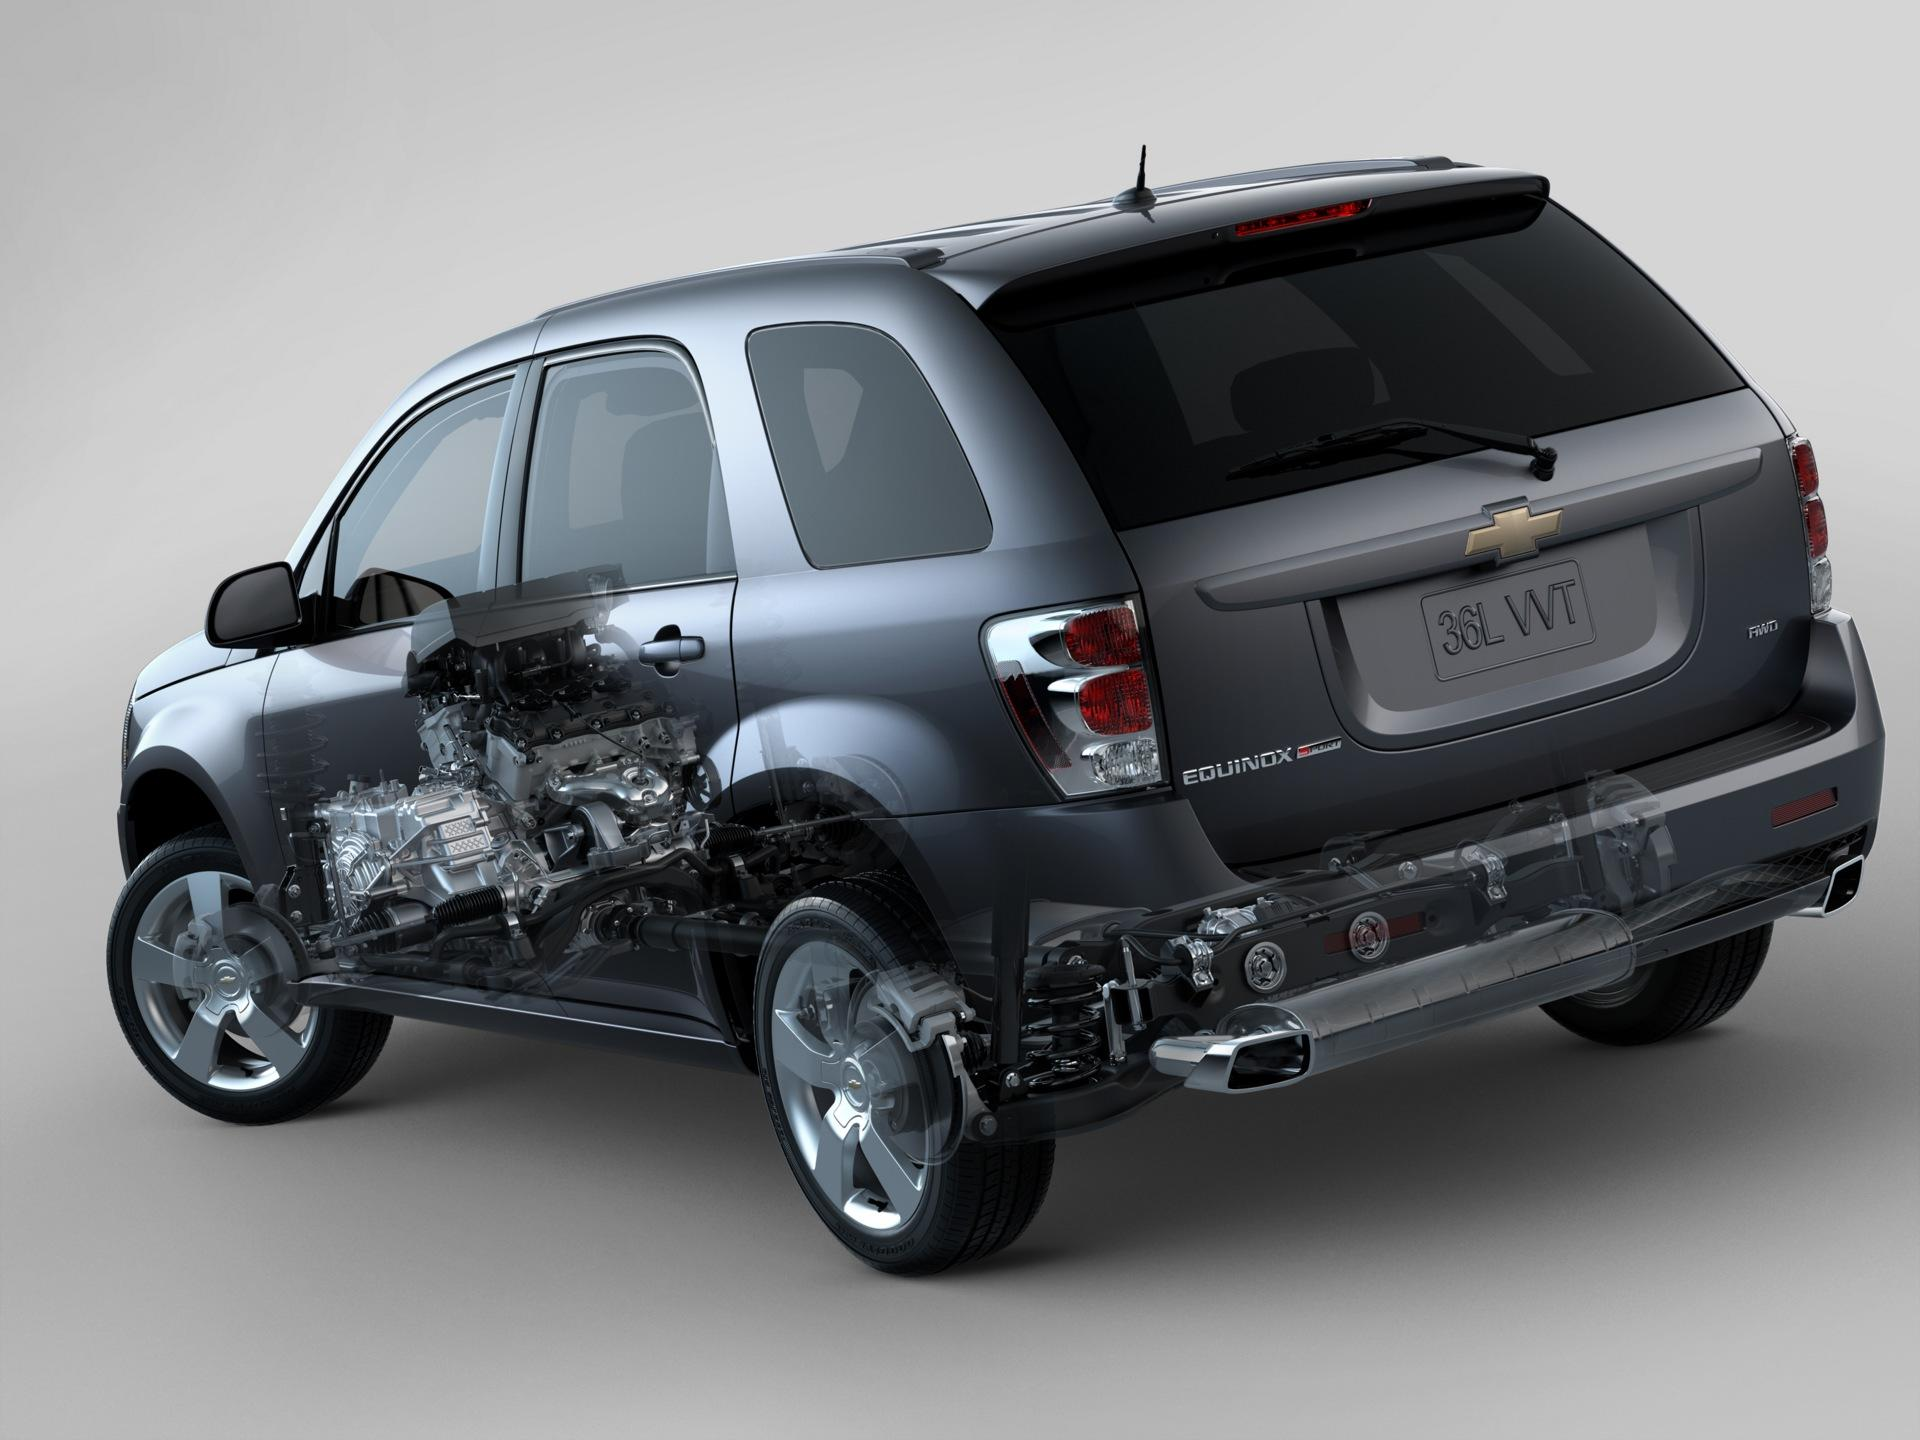 2008 chevrolet equinox photos informations articles. Cars Review. Best American Auto & Cars Review